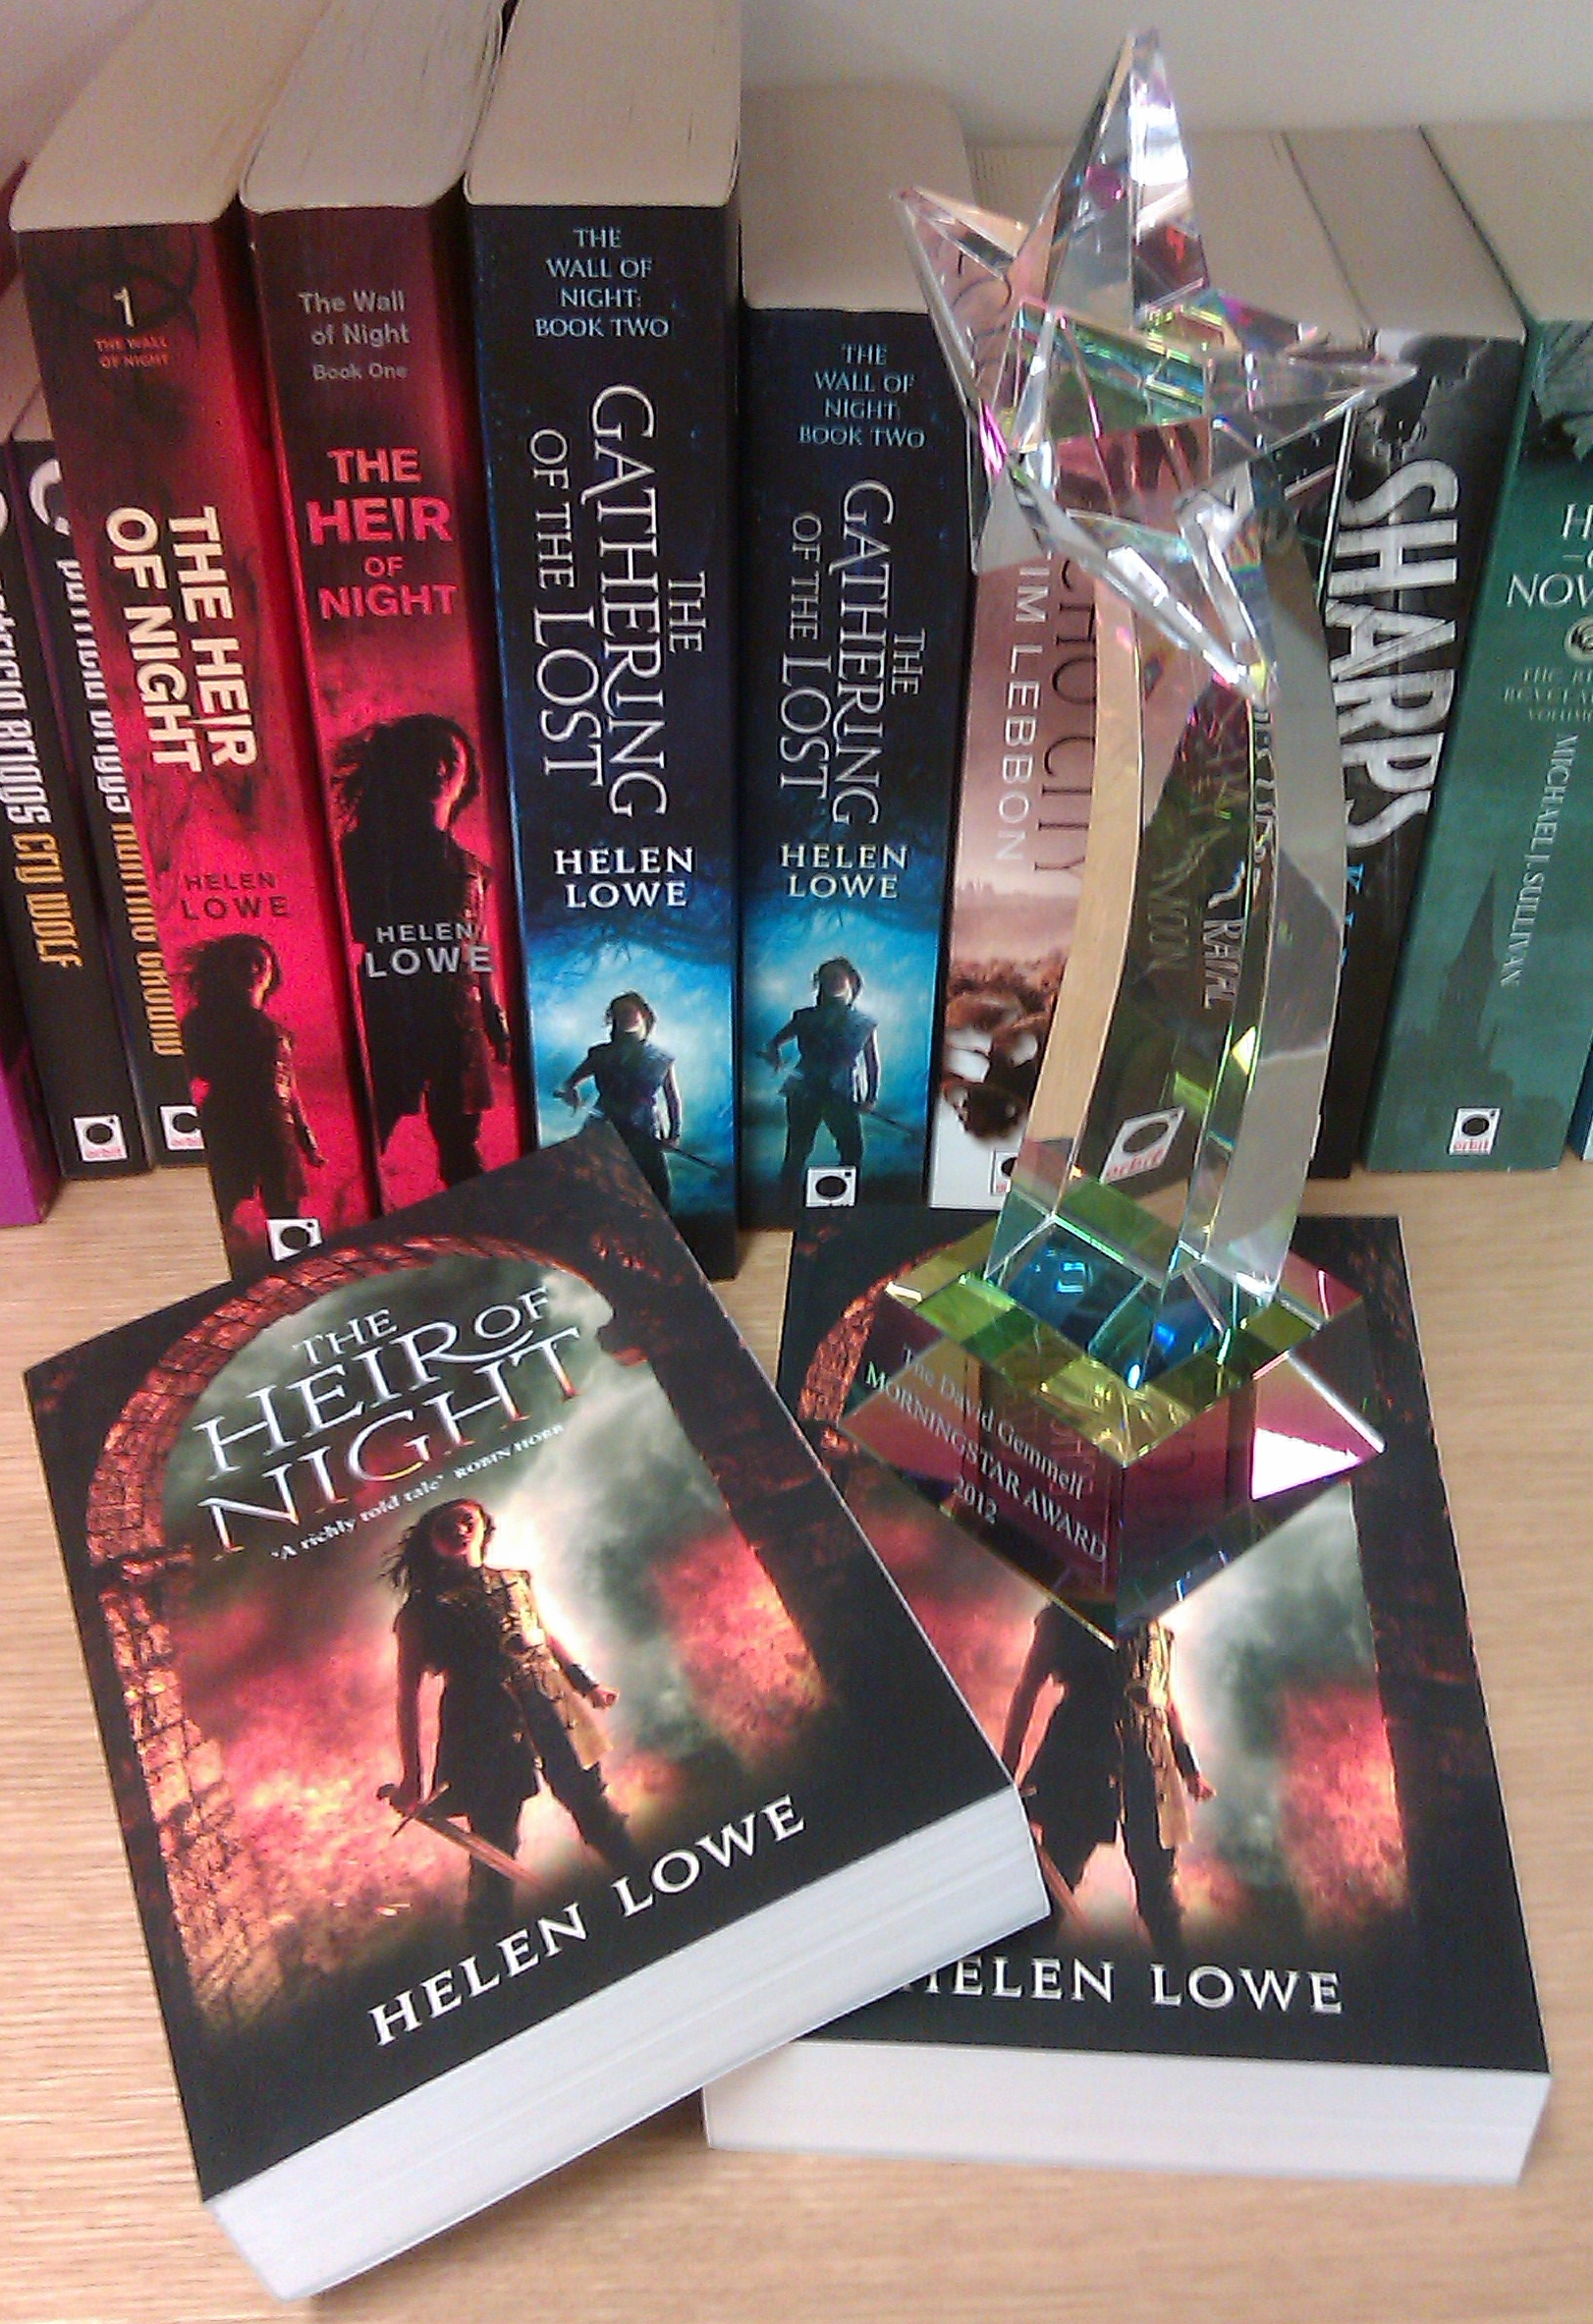 Helen Lowe's trophy for Best Fantasy Debut